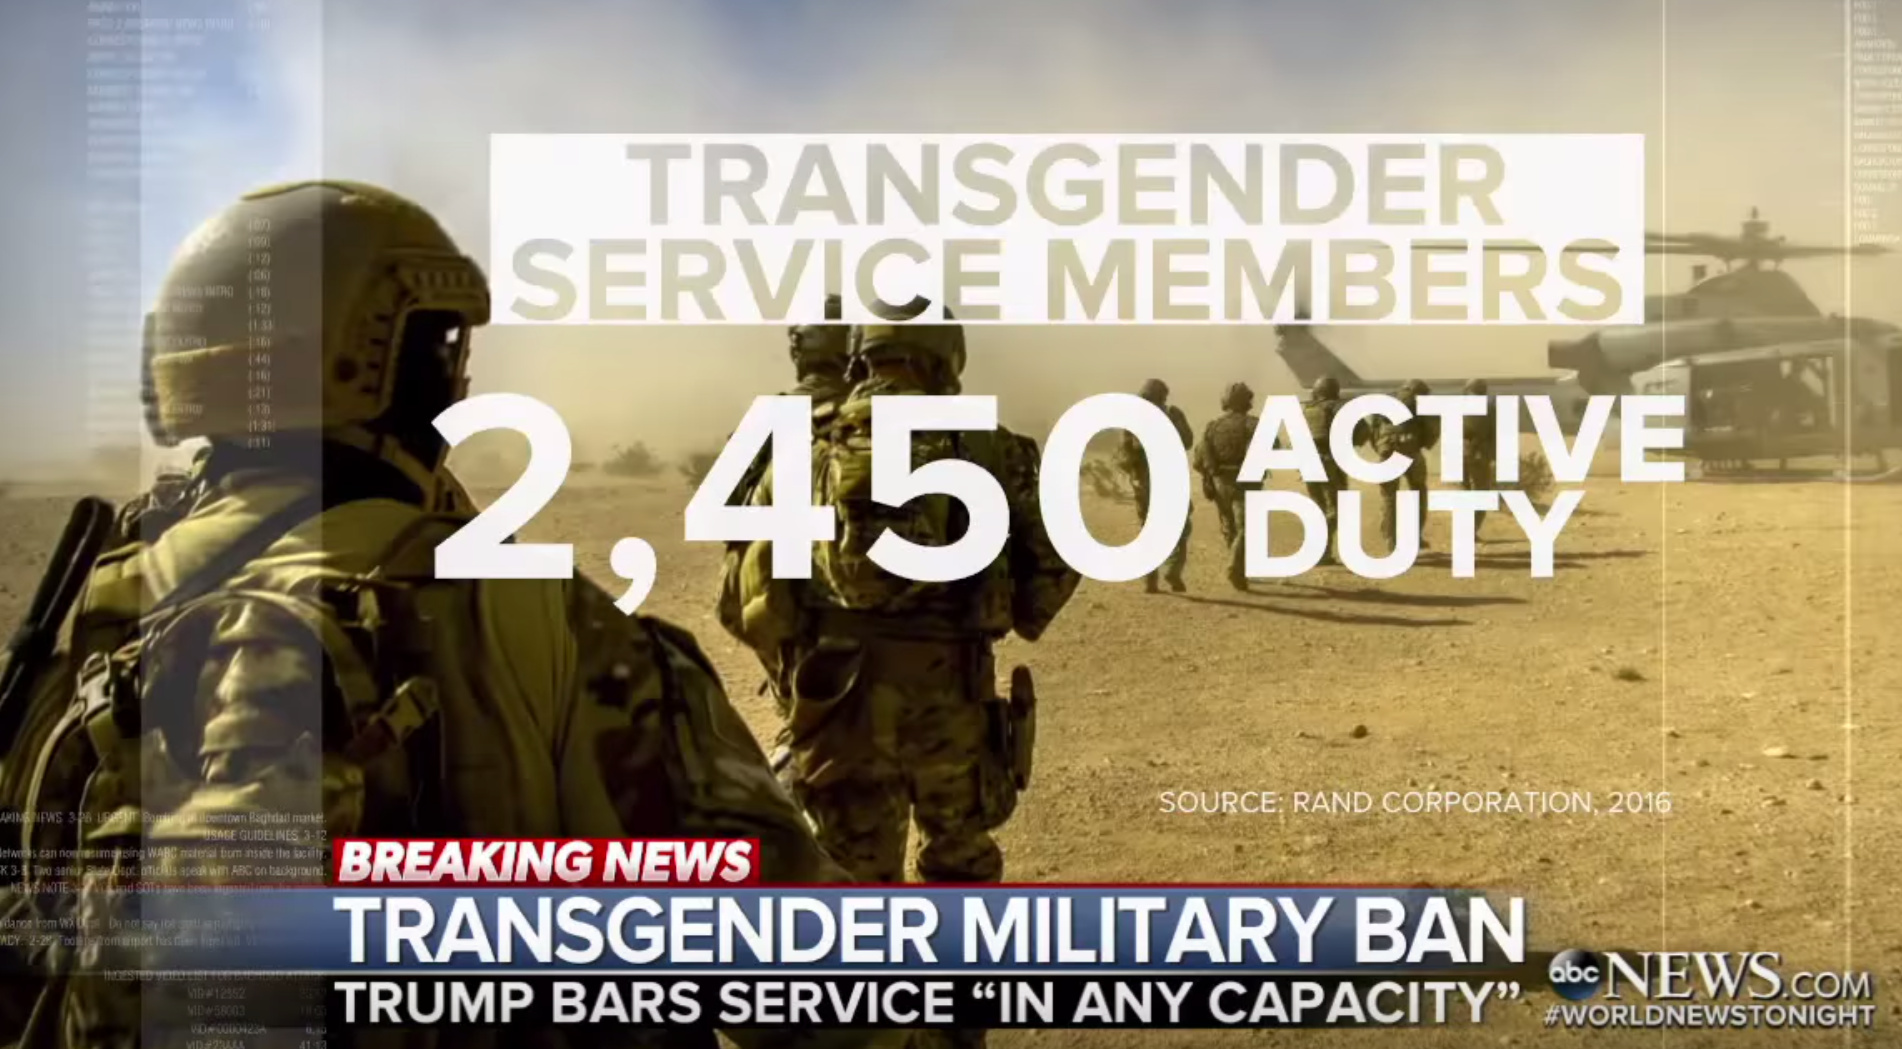 OUTRAGEOUS REPORT: Transgender Surgeries Would Cost Pentagon $1.3 Billion